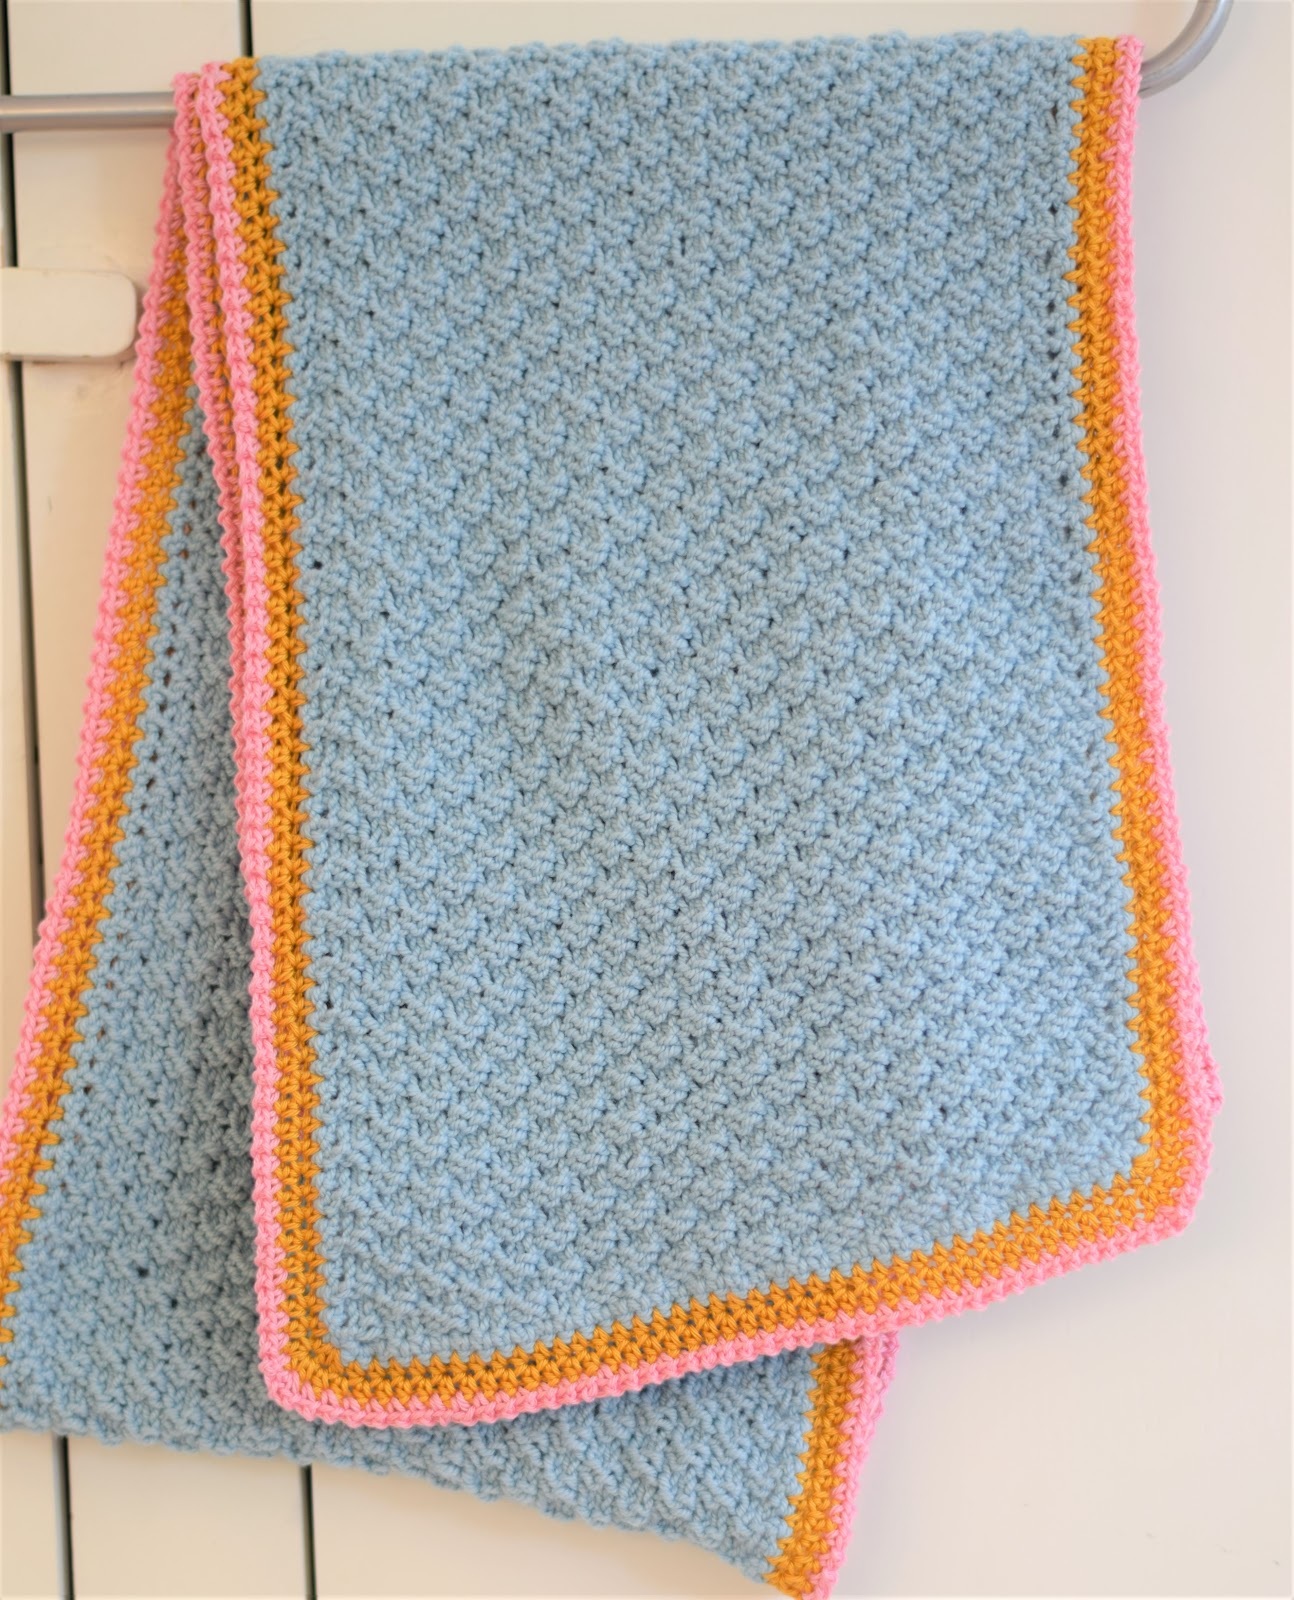 Madebyleen Blog Over Haken Crochet Blog Patroon Gebreide Sjaal